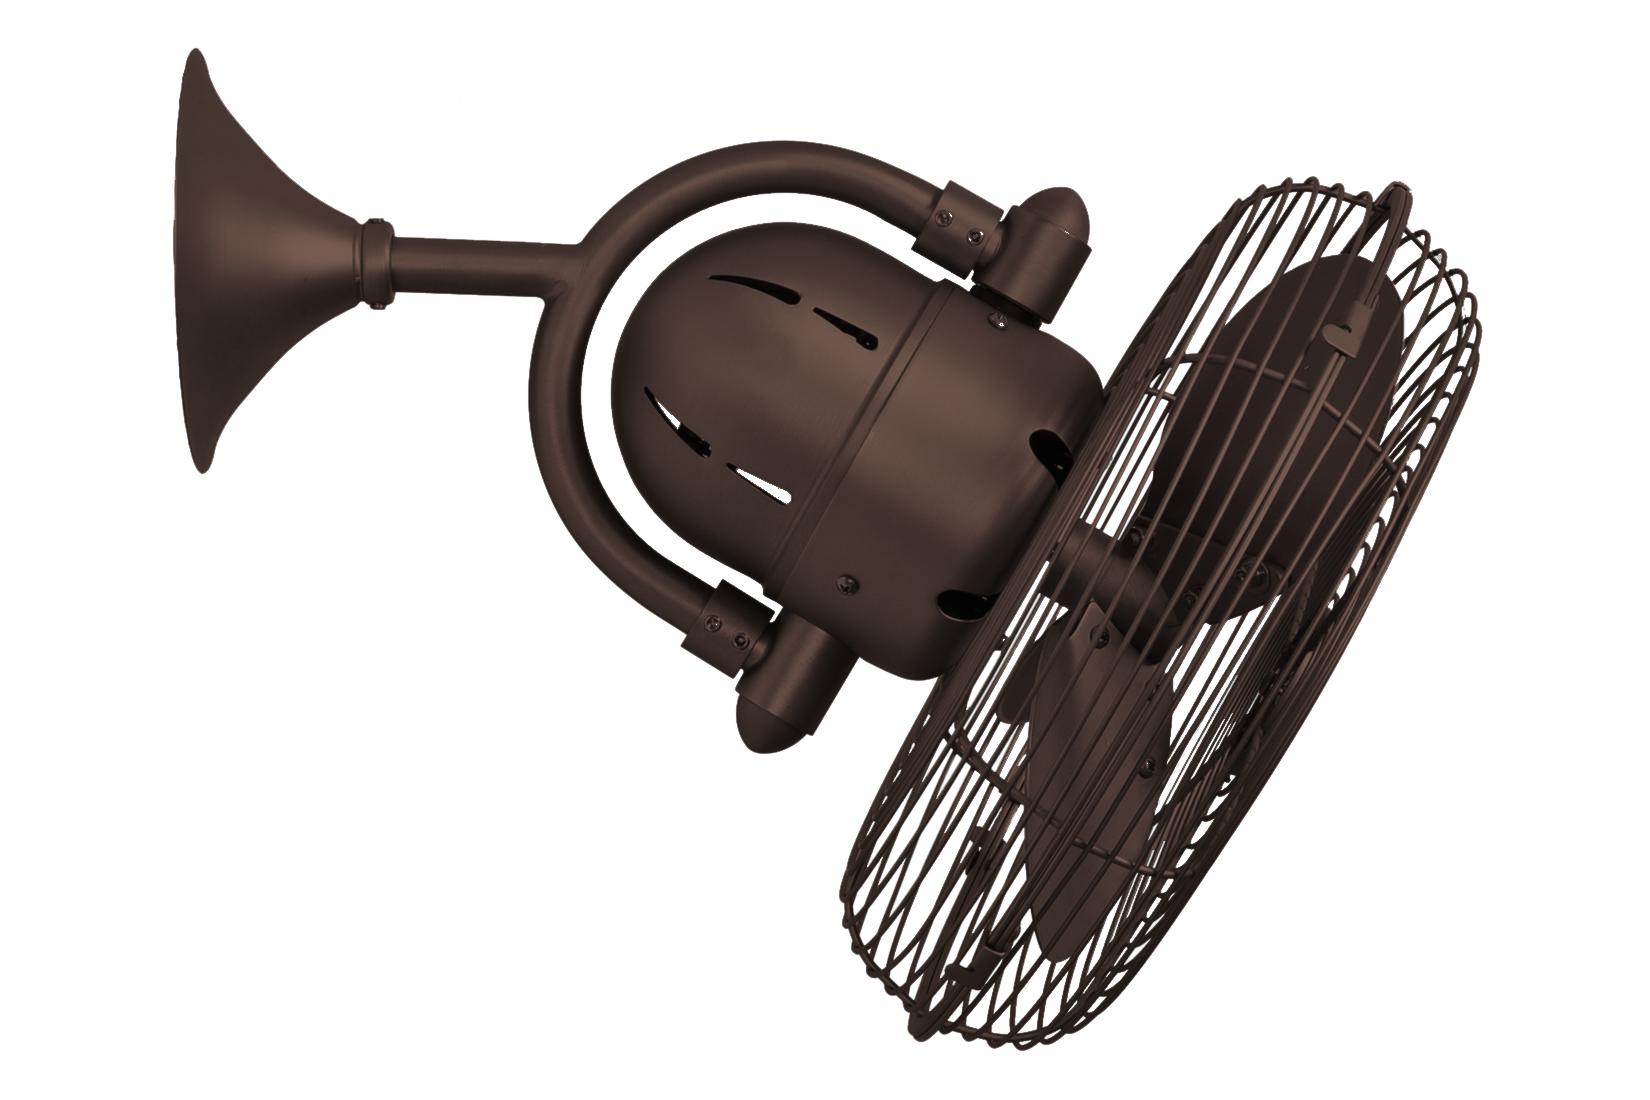 Outdoor Wall Mount Fans Commercial : Cooling down while saving space with wall mounted ceiling